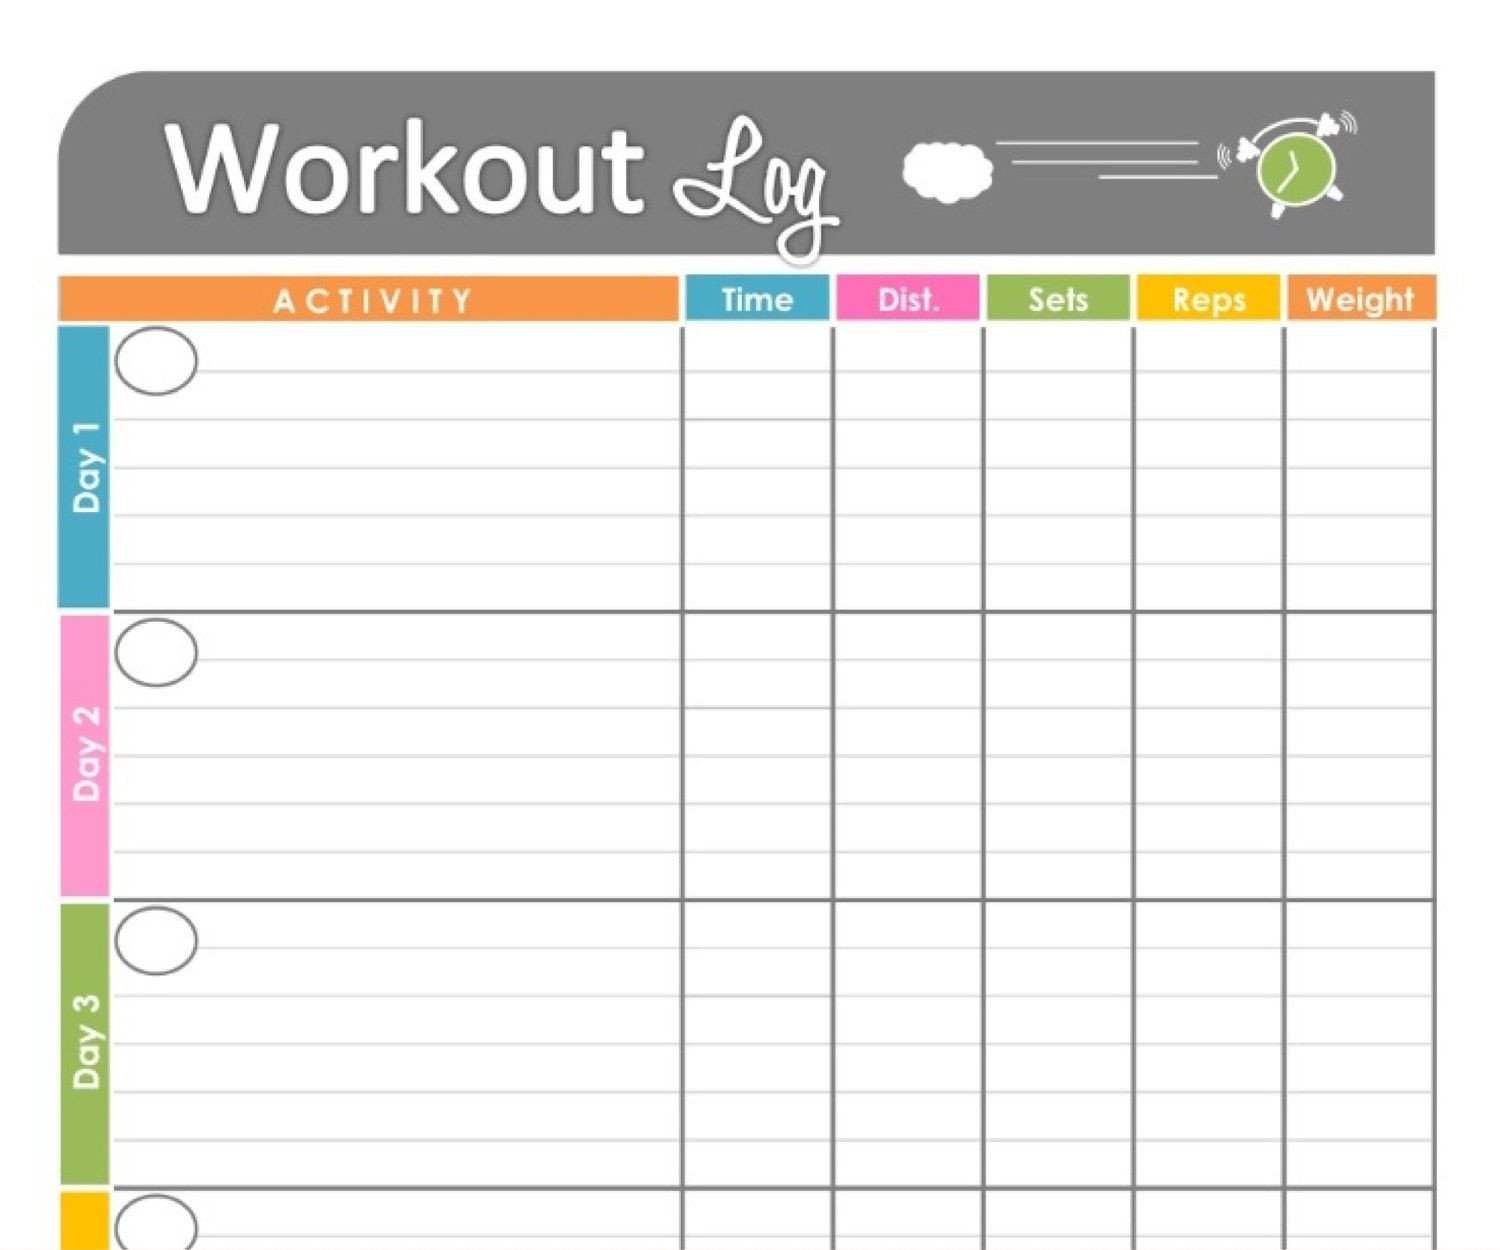 Weekly Workout Schedule Template Free Printable Workout Schedule